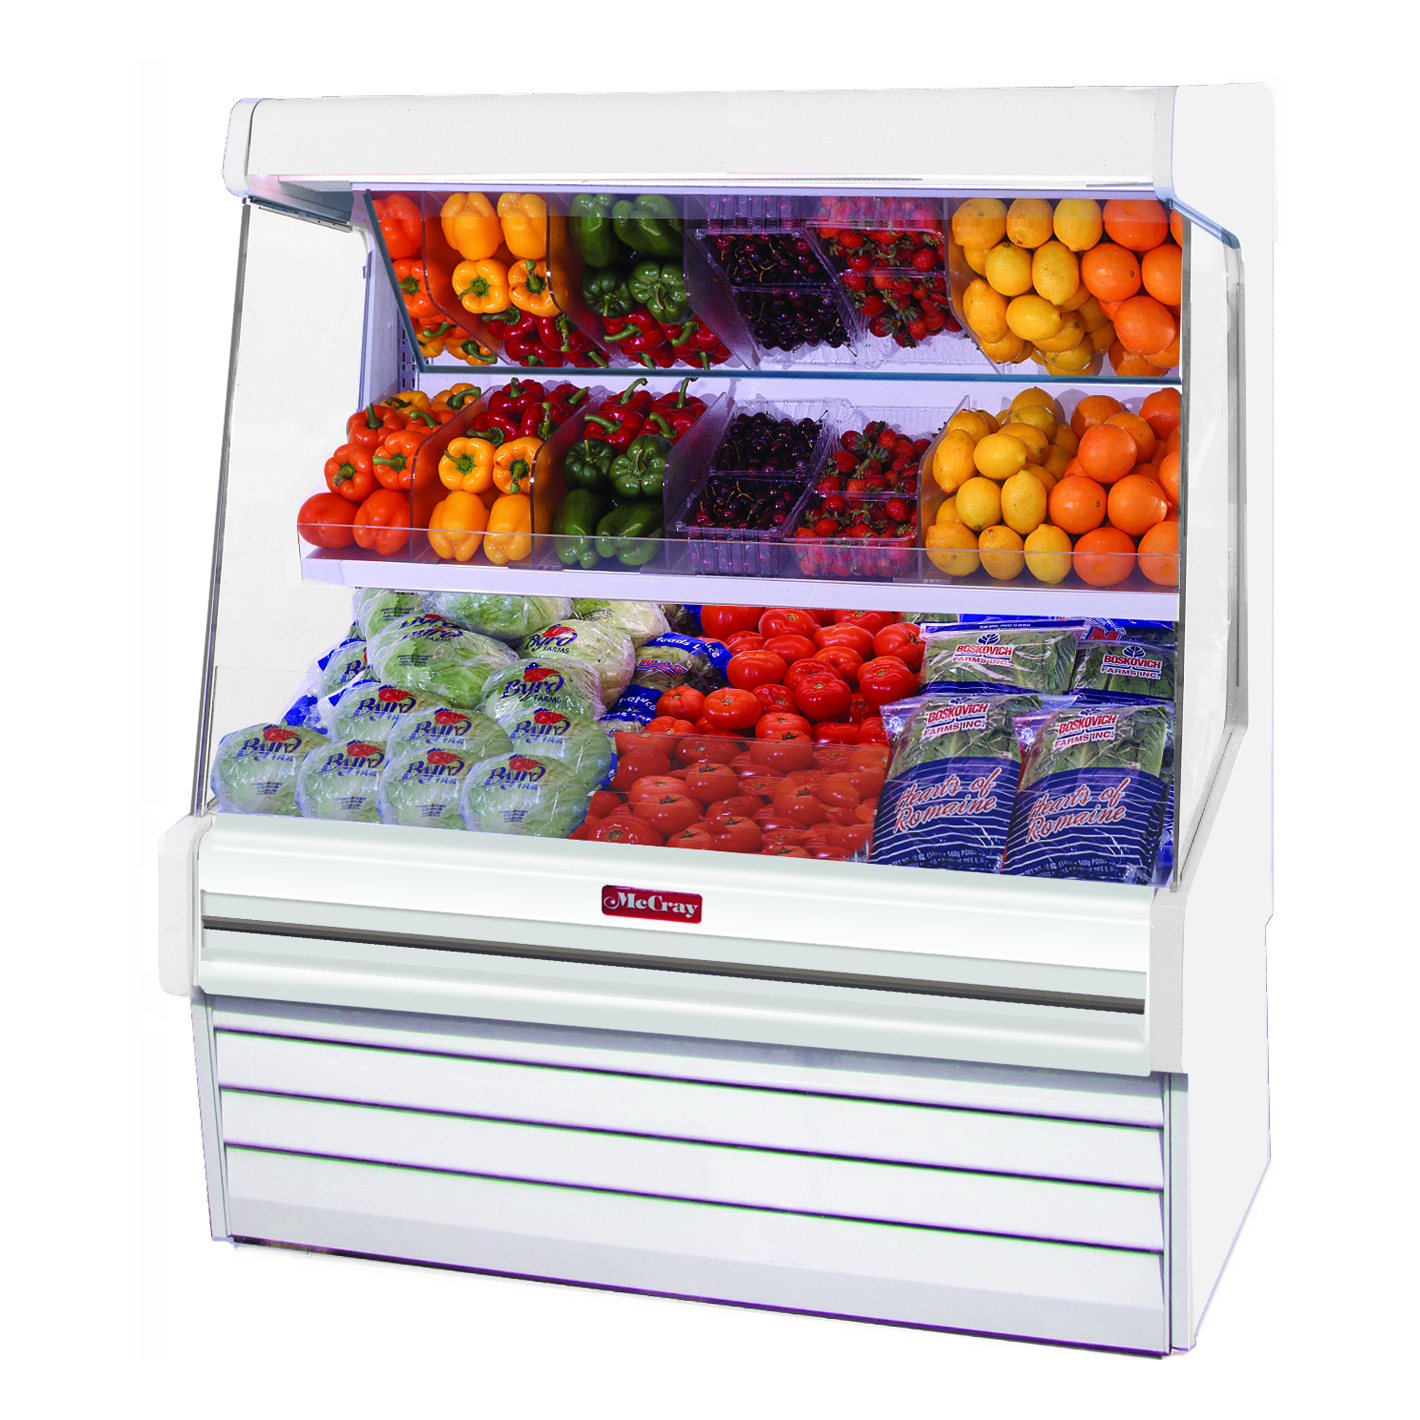 Howard-McCray SC-OM30E-3L-S-LED merchandiser, open refrigerated display